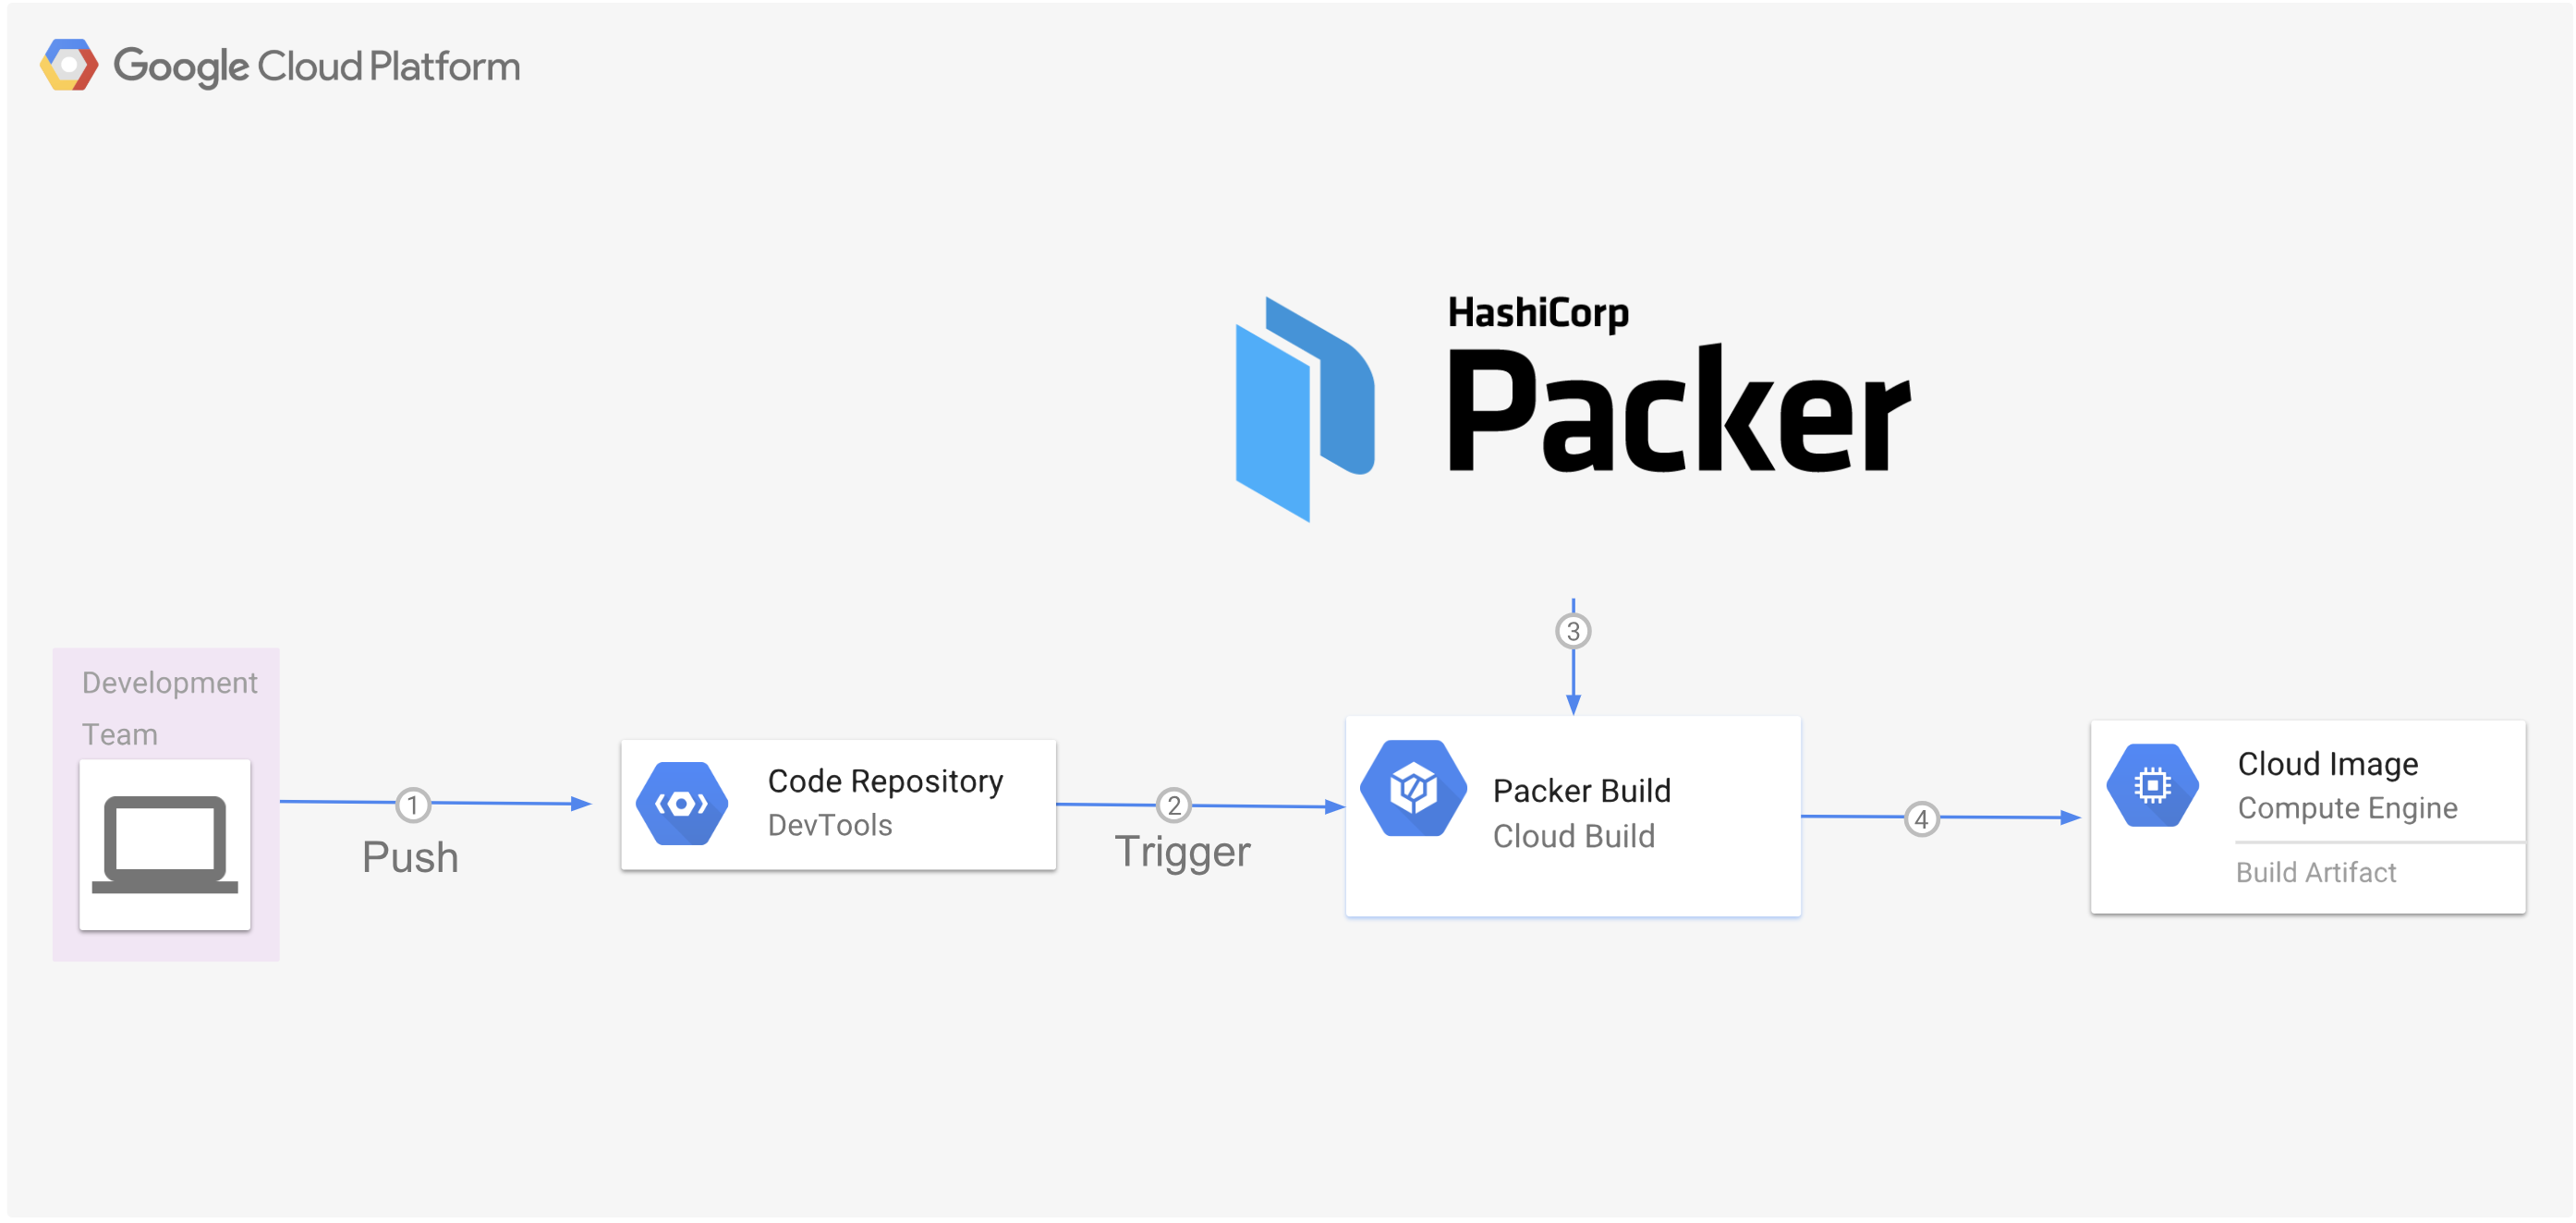 push to repository triggers cloud build with packer which builds machine image